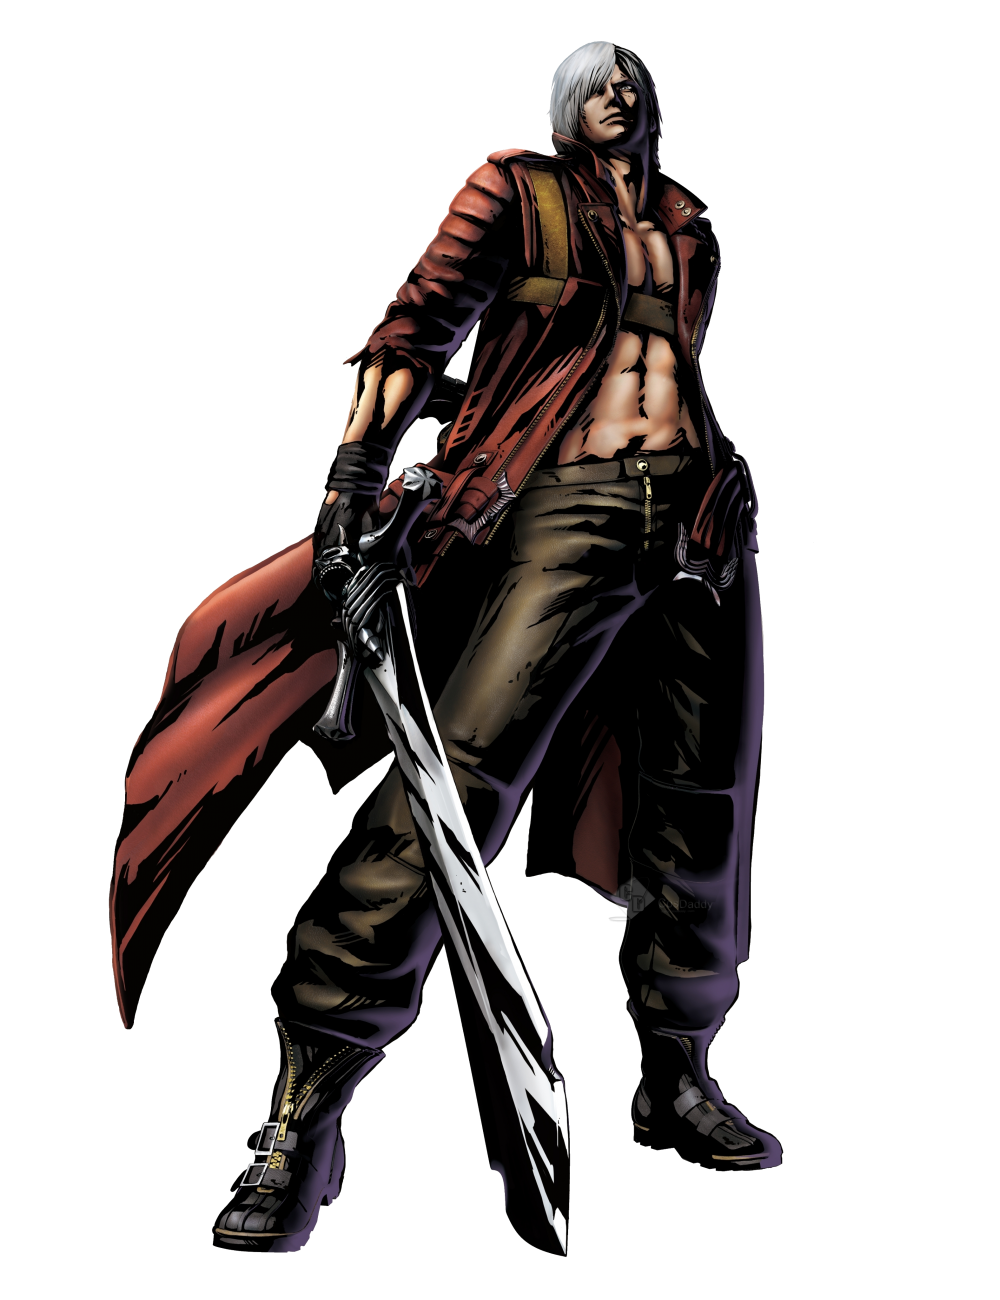 Devil may cry 3 png. Dante cosplay costume